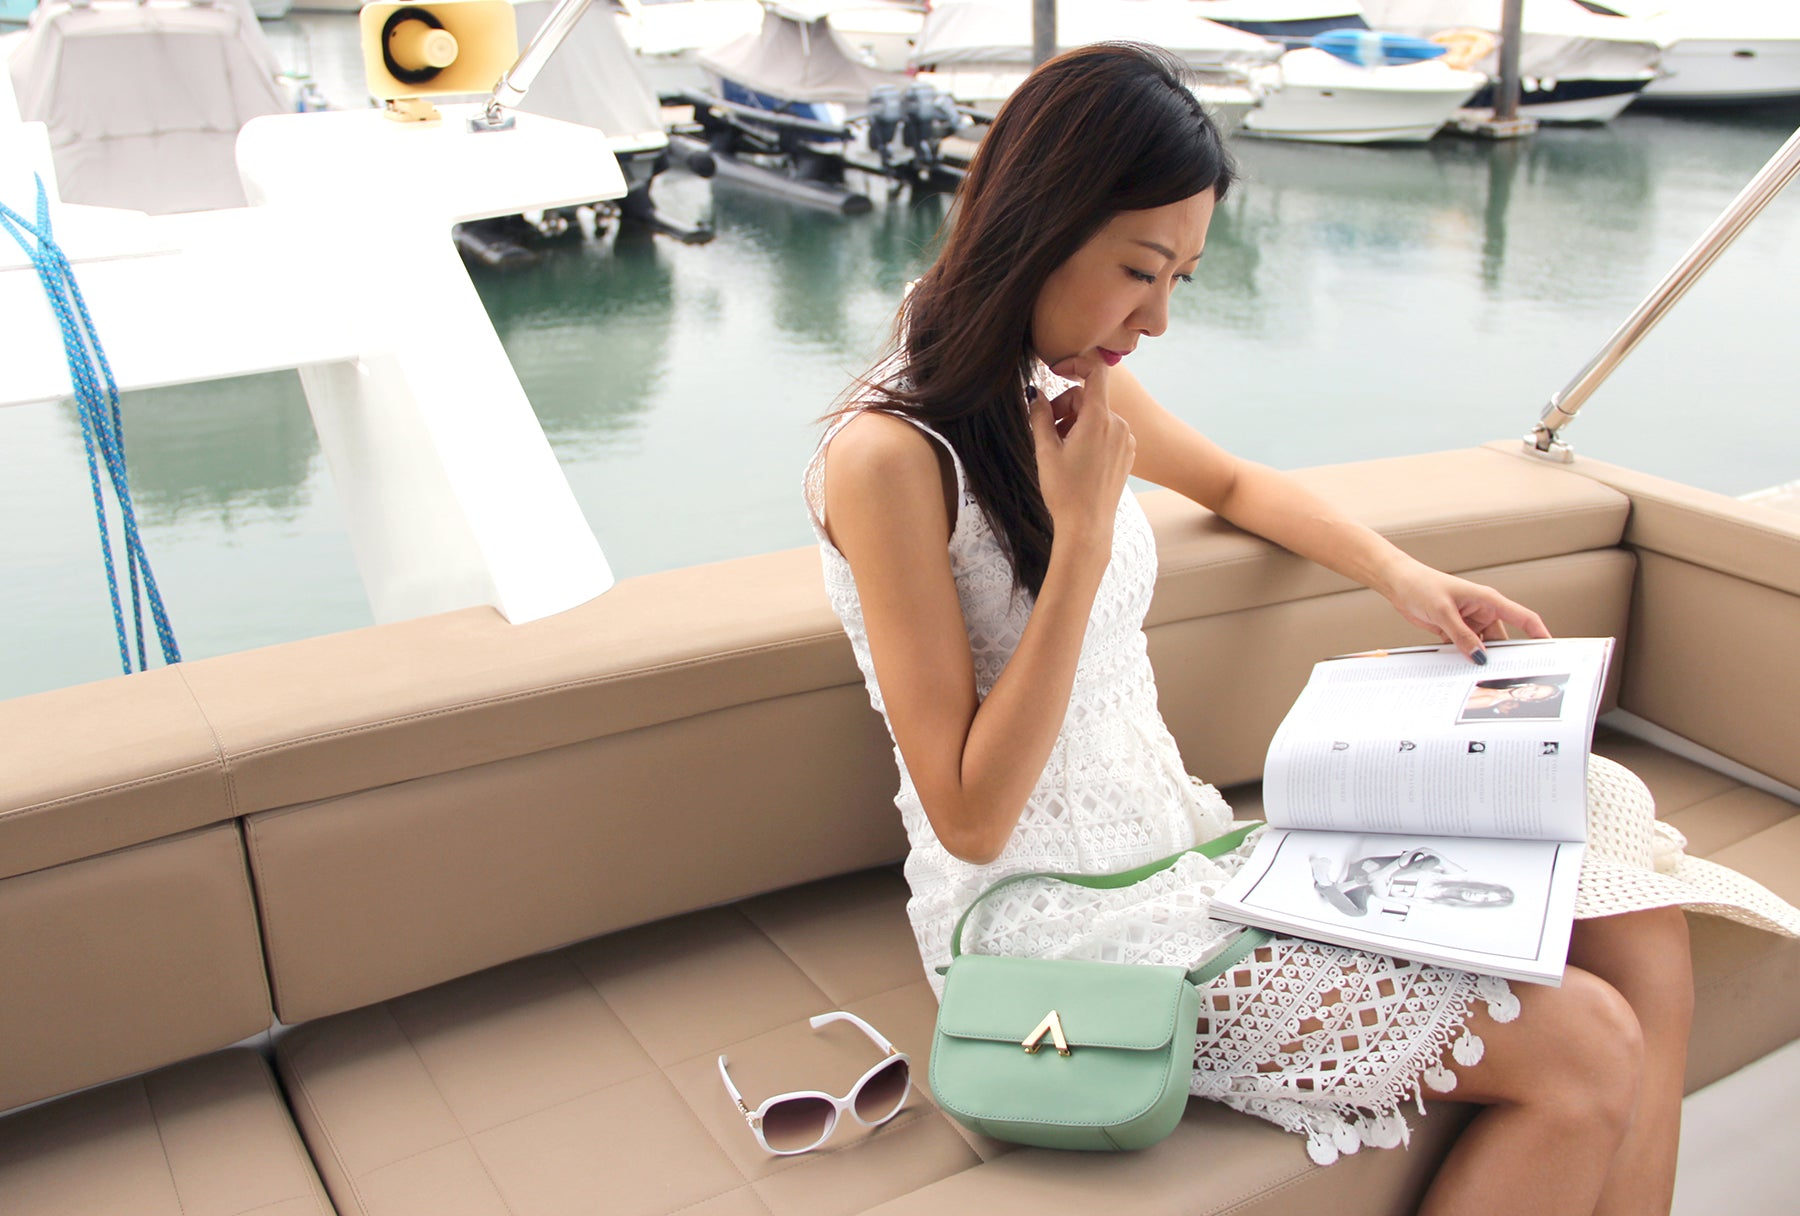 YI-MING X ESEMBLE Meet the Girl Grace Choi, Founder and Designer of Yi-ming, Model & Event ProducerPark Shoulder Bag Seafoam